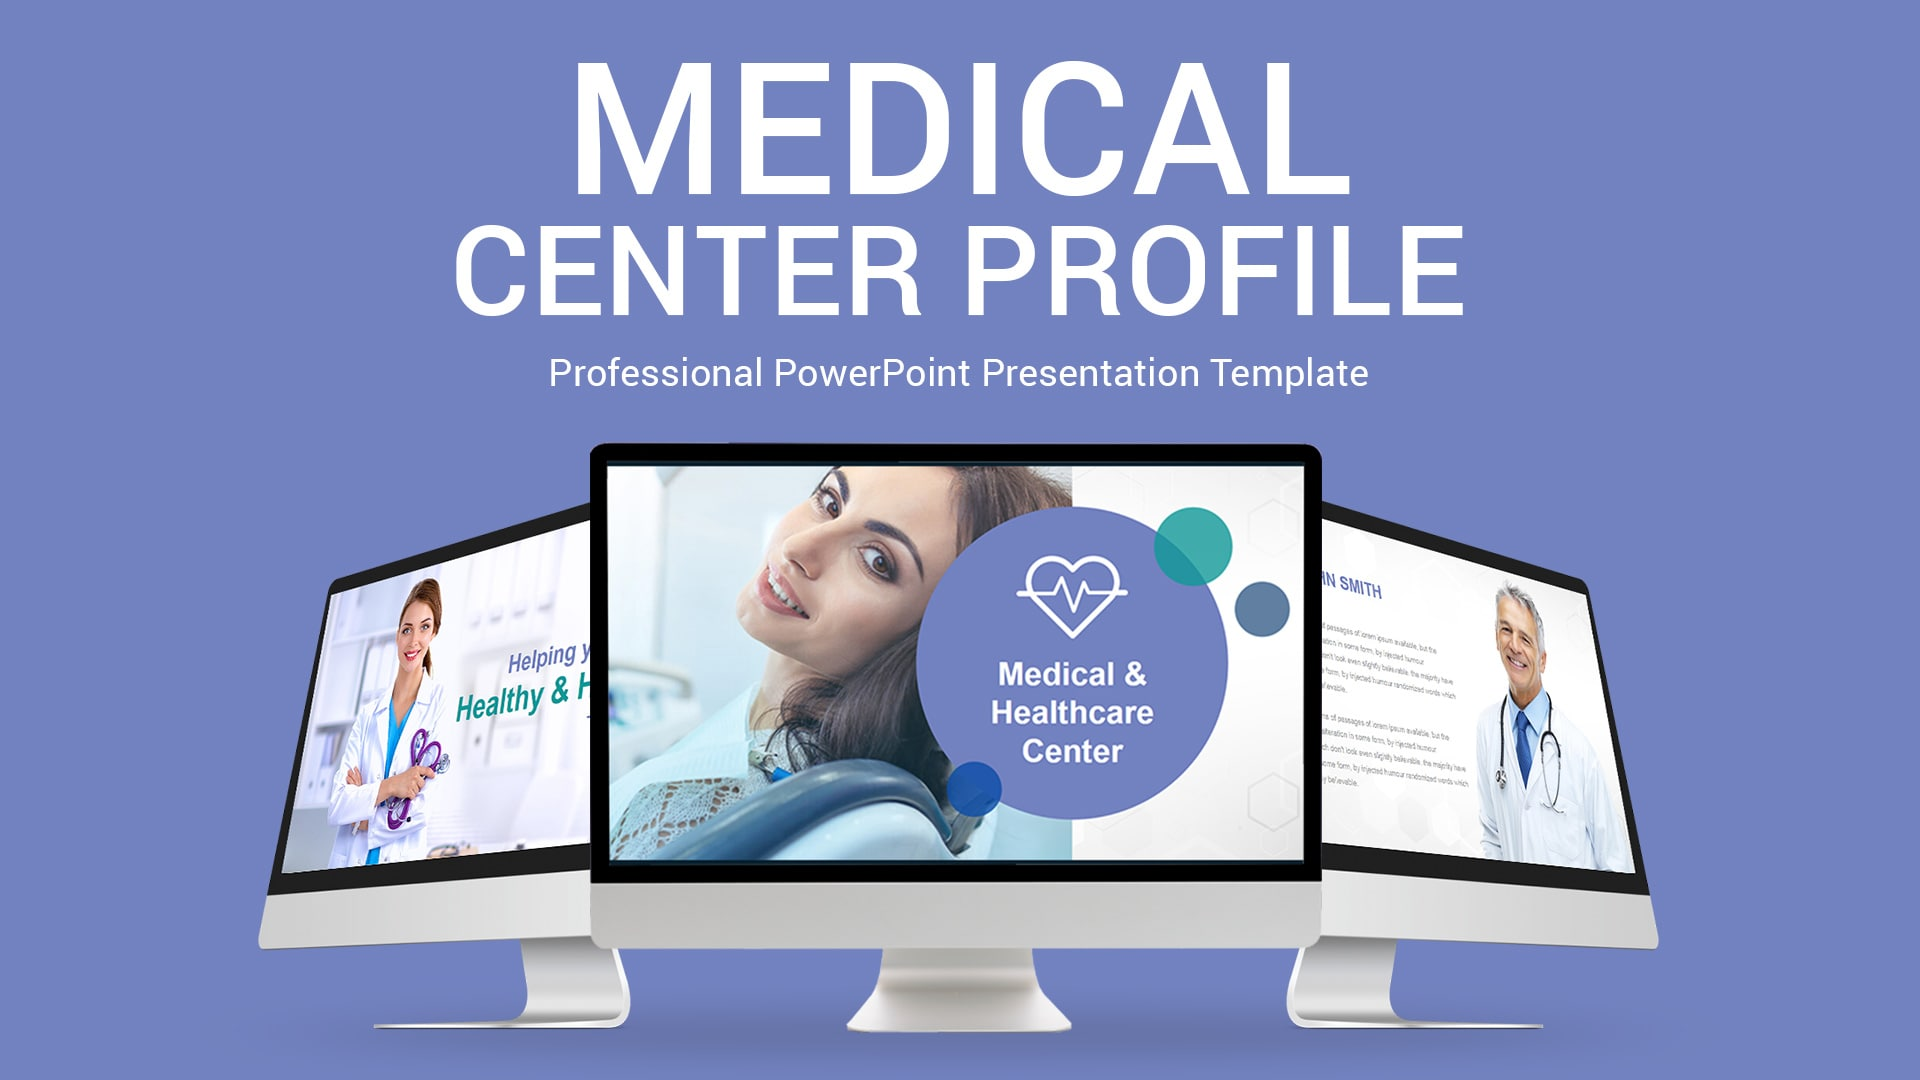 Medical Center PowerPoint Templates Themes – Premium Medical PowerPoint Templates